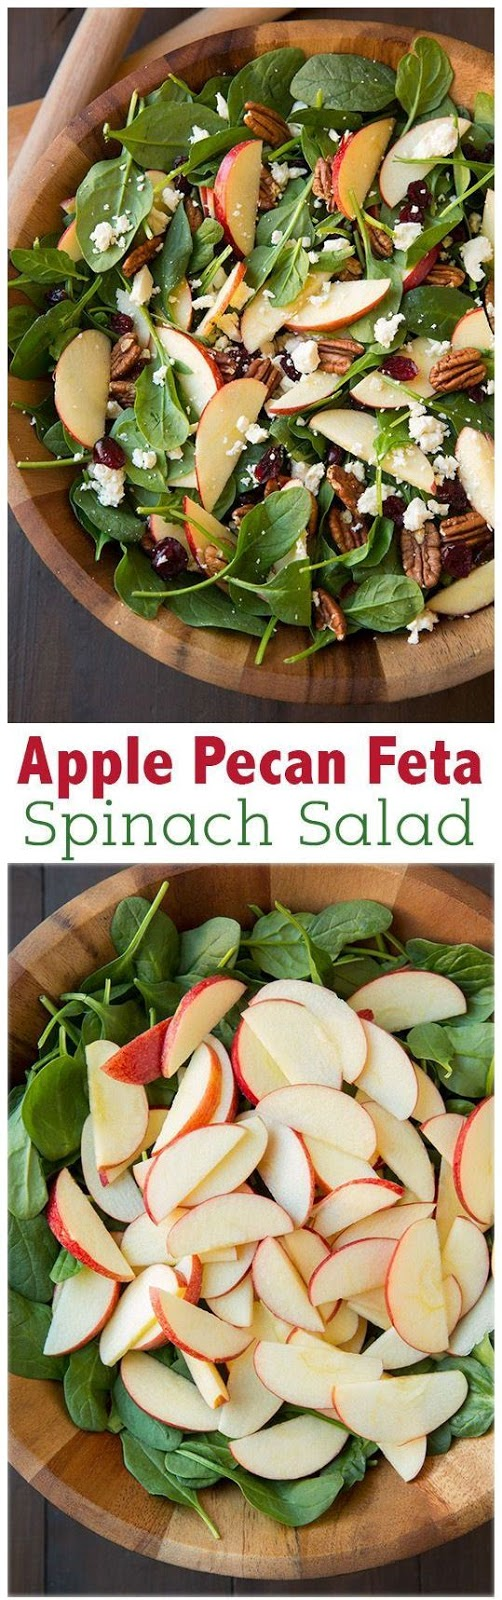 Apple Pecan Feta Spinach Salad with Maple Cider Vinaigrette